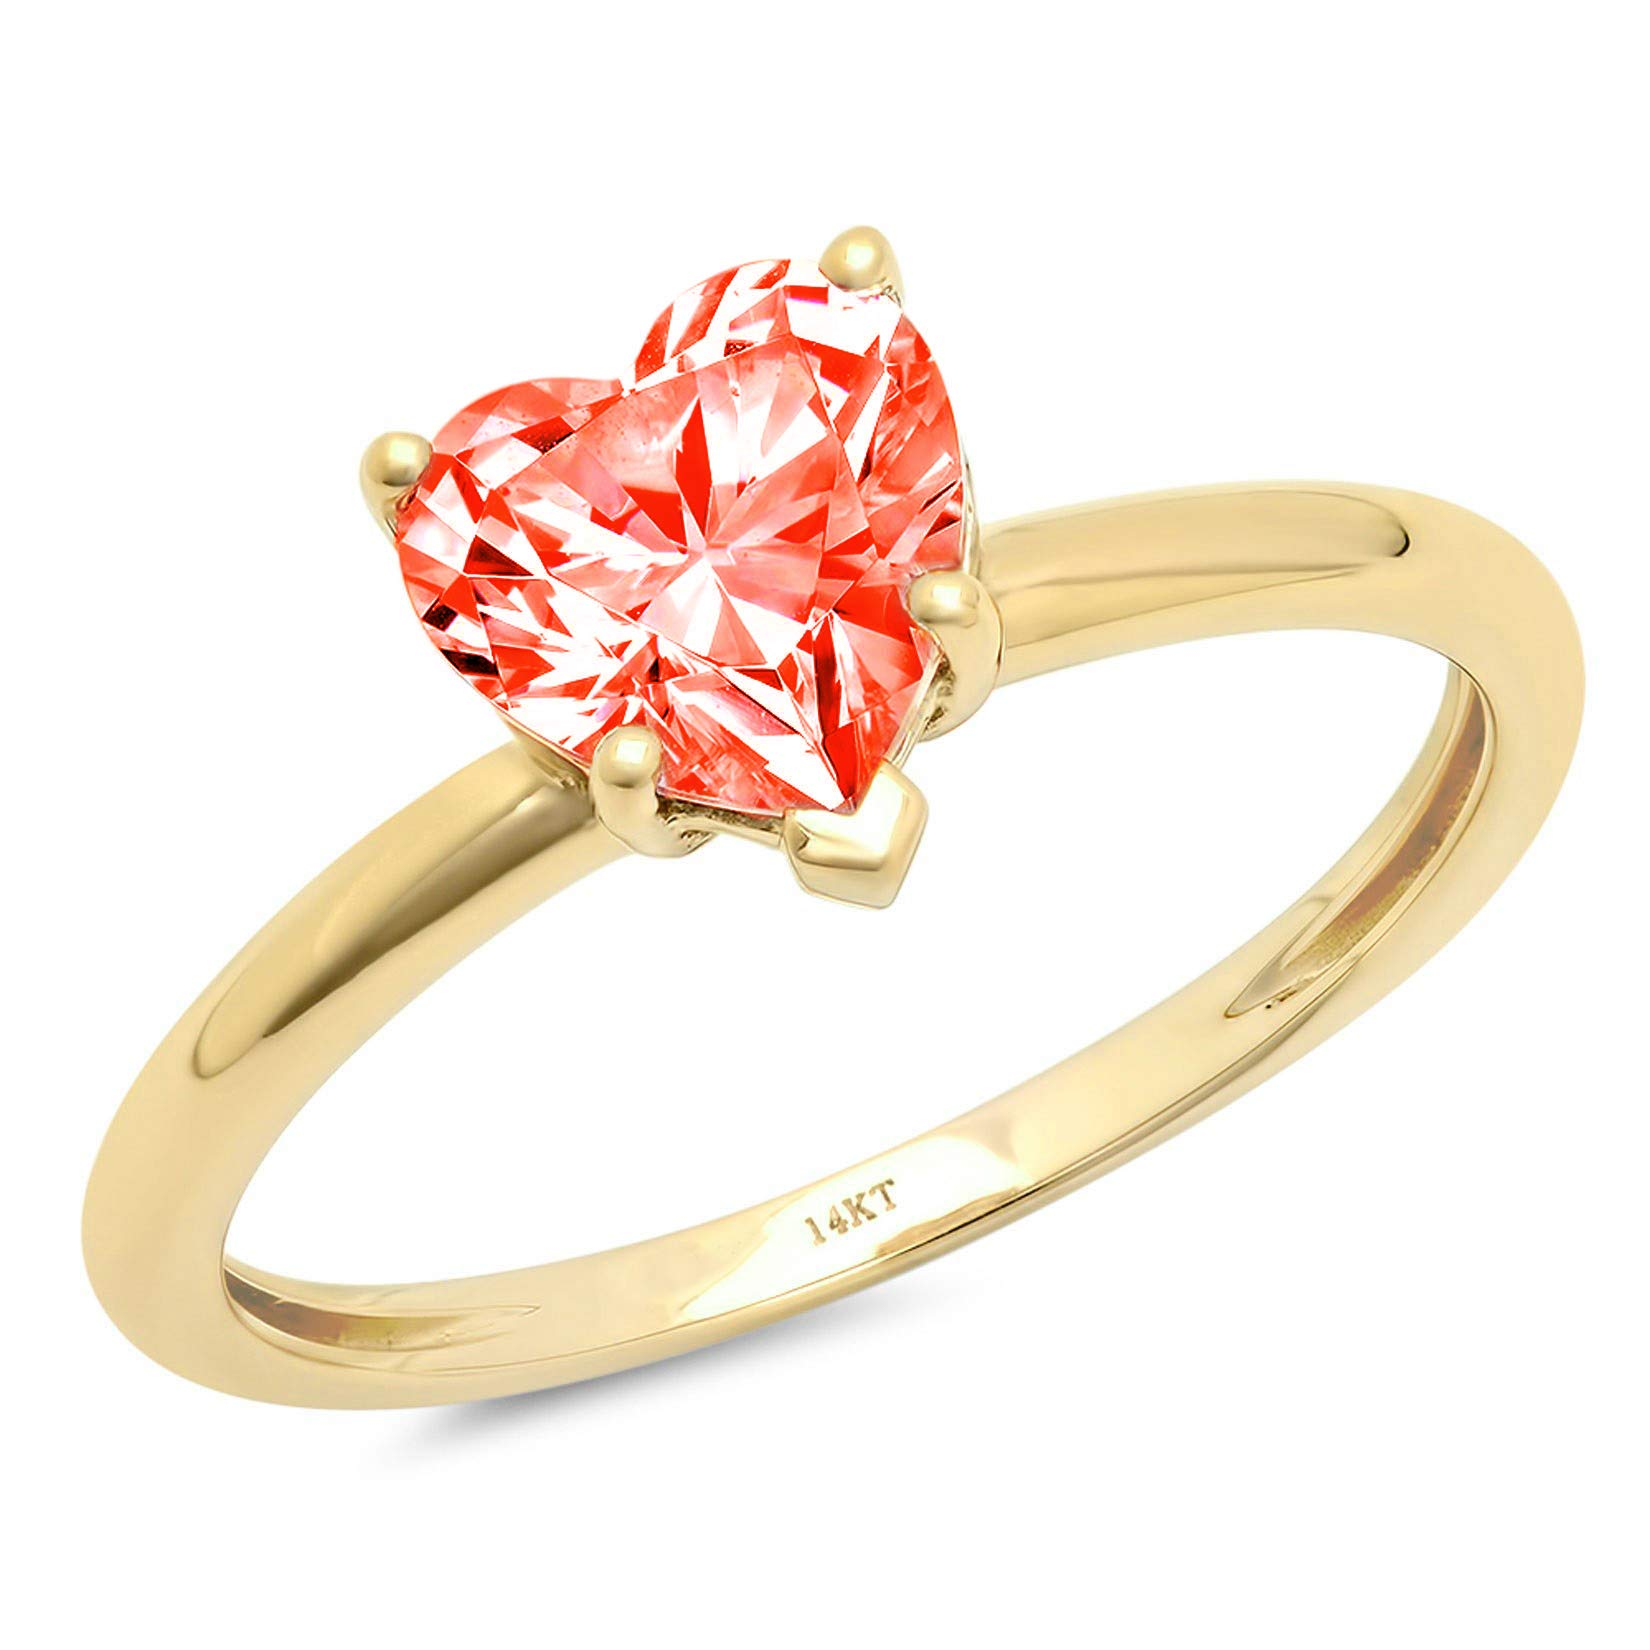 1.95ct Brilliant Heart Cut Solitaire Red Simulated Diamond CZ Ideal VVS1 D 5-Prong Classic Designer Statement Ring Solid Real 14k Yellow Gold for Women